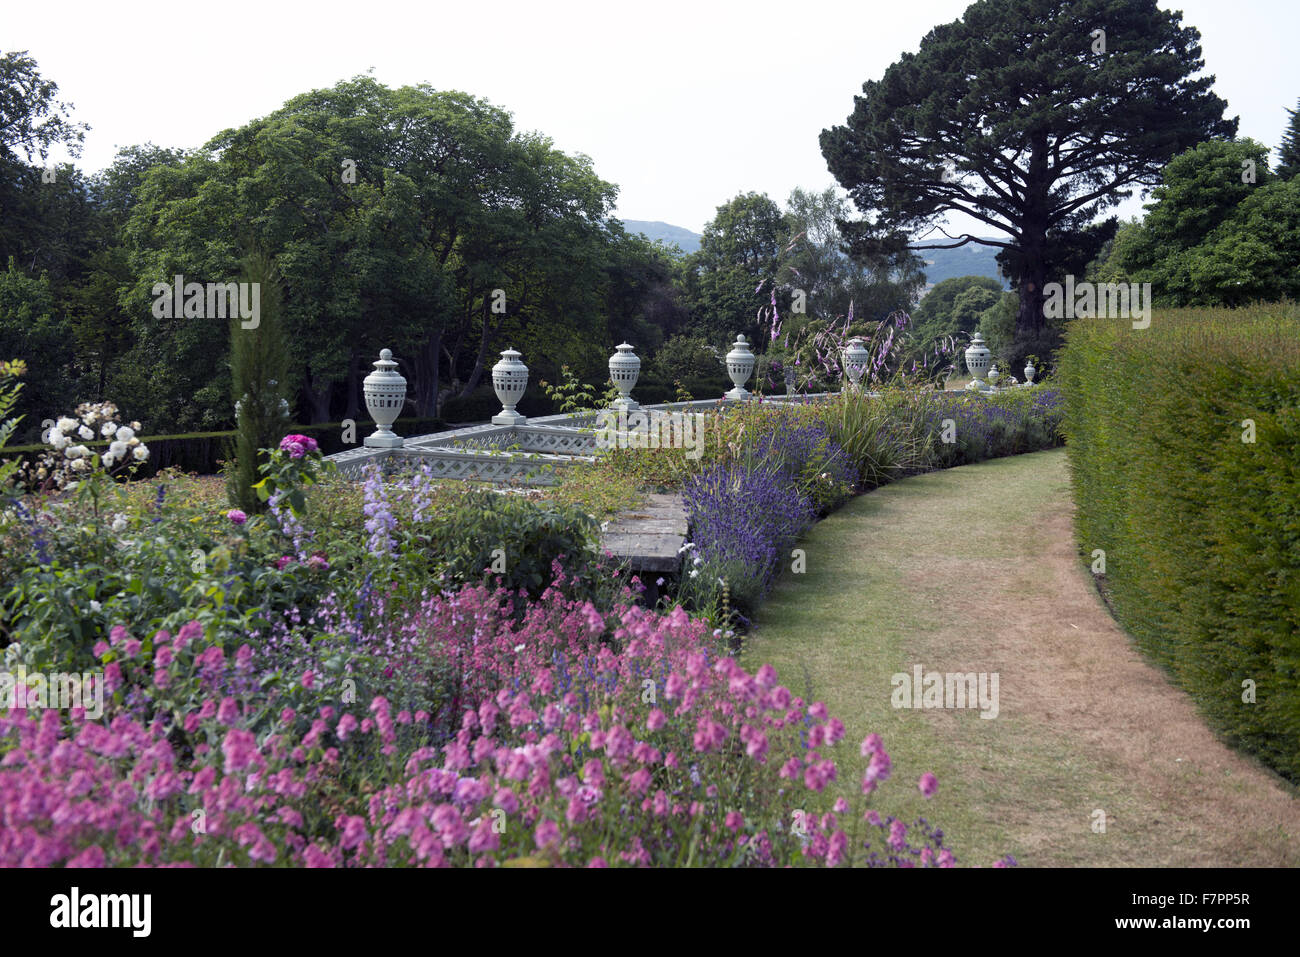 The Lower Rose Terrace in July at Bodnant Garden, Clwyd, Wales. Created by five generations of one family, Bodnant Stock Photo